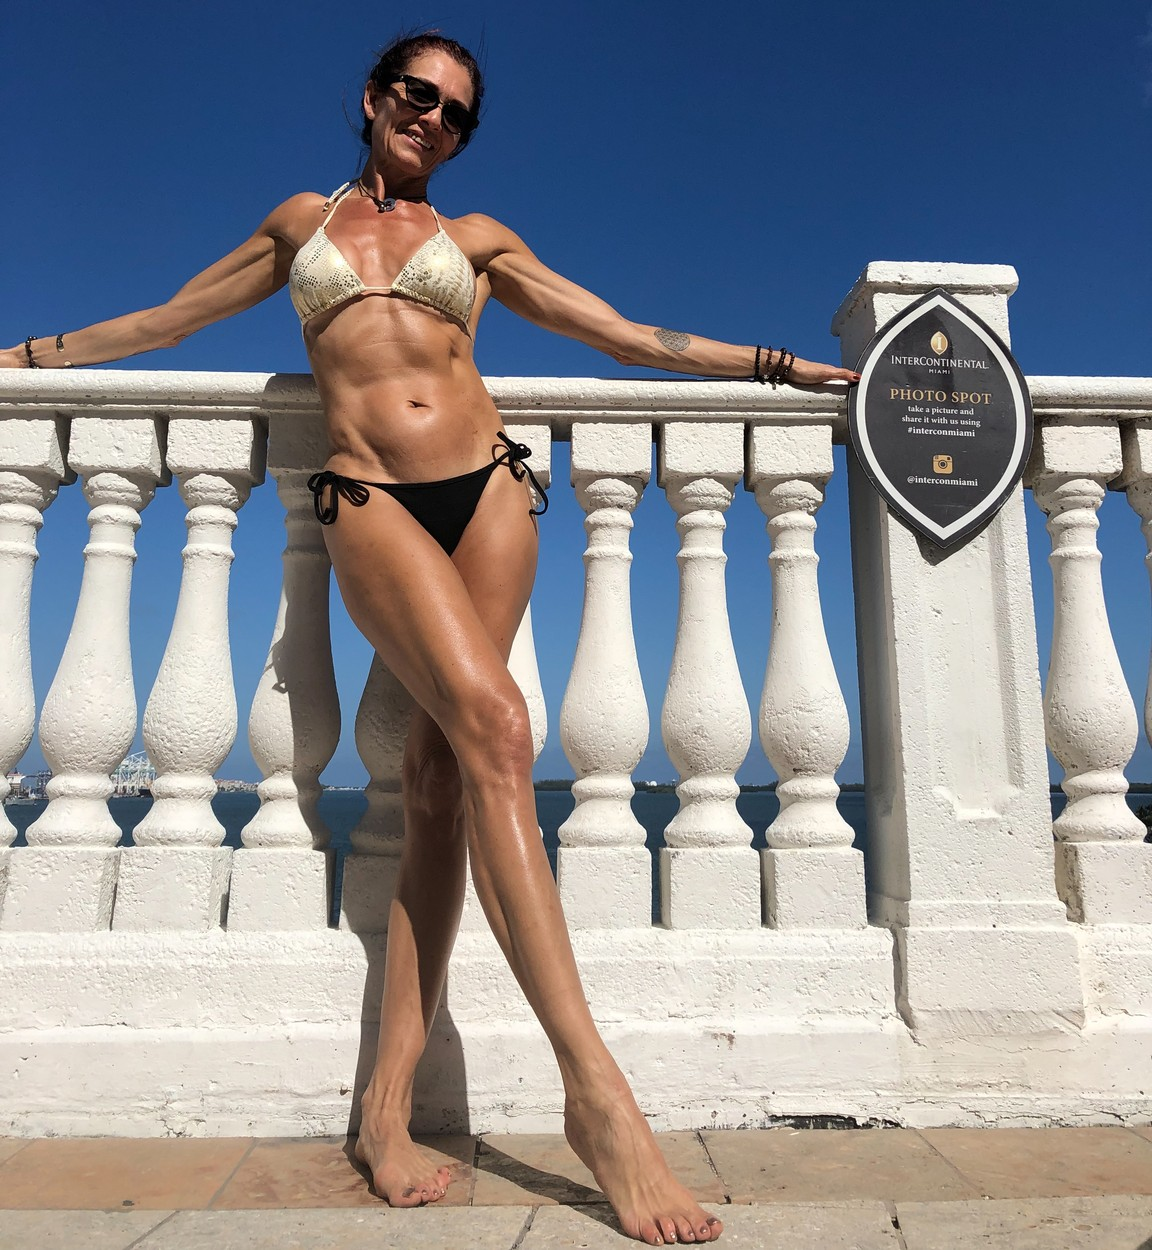 Alejandra pictured in a bikini. THIS GRAN swears by a RAW FOOD diet to keep her looking youthful - and the flirtatious advances she receives from MEN and being mistaken for her daughter's sister prove it's working. Pilates instructor, Alejandra Labastida-Shapiro (55) who lives in Chicago, Illinois, USA, began her journey to live a healthy lifestyle when she was just 10 years old when her father would encourage her to run with him. Growing up with healthy parents who would use natural remedies and medicinal herbs to avoid future sicknesses and injuries, educated Alejandra about the world of fitness and diets. While she initially chose this lifestyle for vanity reasons, as she grew older, she began to re-shift her focus to improve her health. In 2000, Alejandra, who is a mum to three adults; Roberto (34), Alejandra (32) and Mauricio (25), was introduced to Pilates through a friend, which she fell in love with. She avoids any processed food and sugar and consumes mainly raw and organic food. Her youthful figure has prompted many advances from men who give her compliments on her appearance and has even received flowers from a secret admirer. mediadrumworld.com / Alejandra Labastida-Shapiro, Image: 474475303, License: Rights-managed, Restrictions: , Model Release: no, Credit line: mediadrumworld.com / Alejandra L / Media Drum World / Profimedia